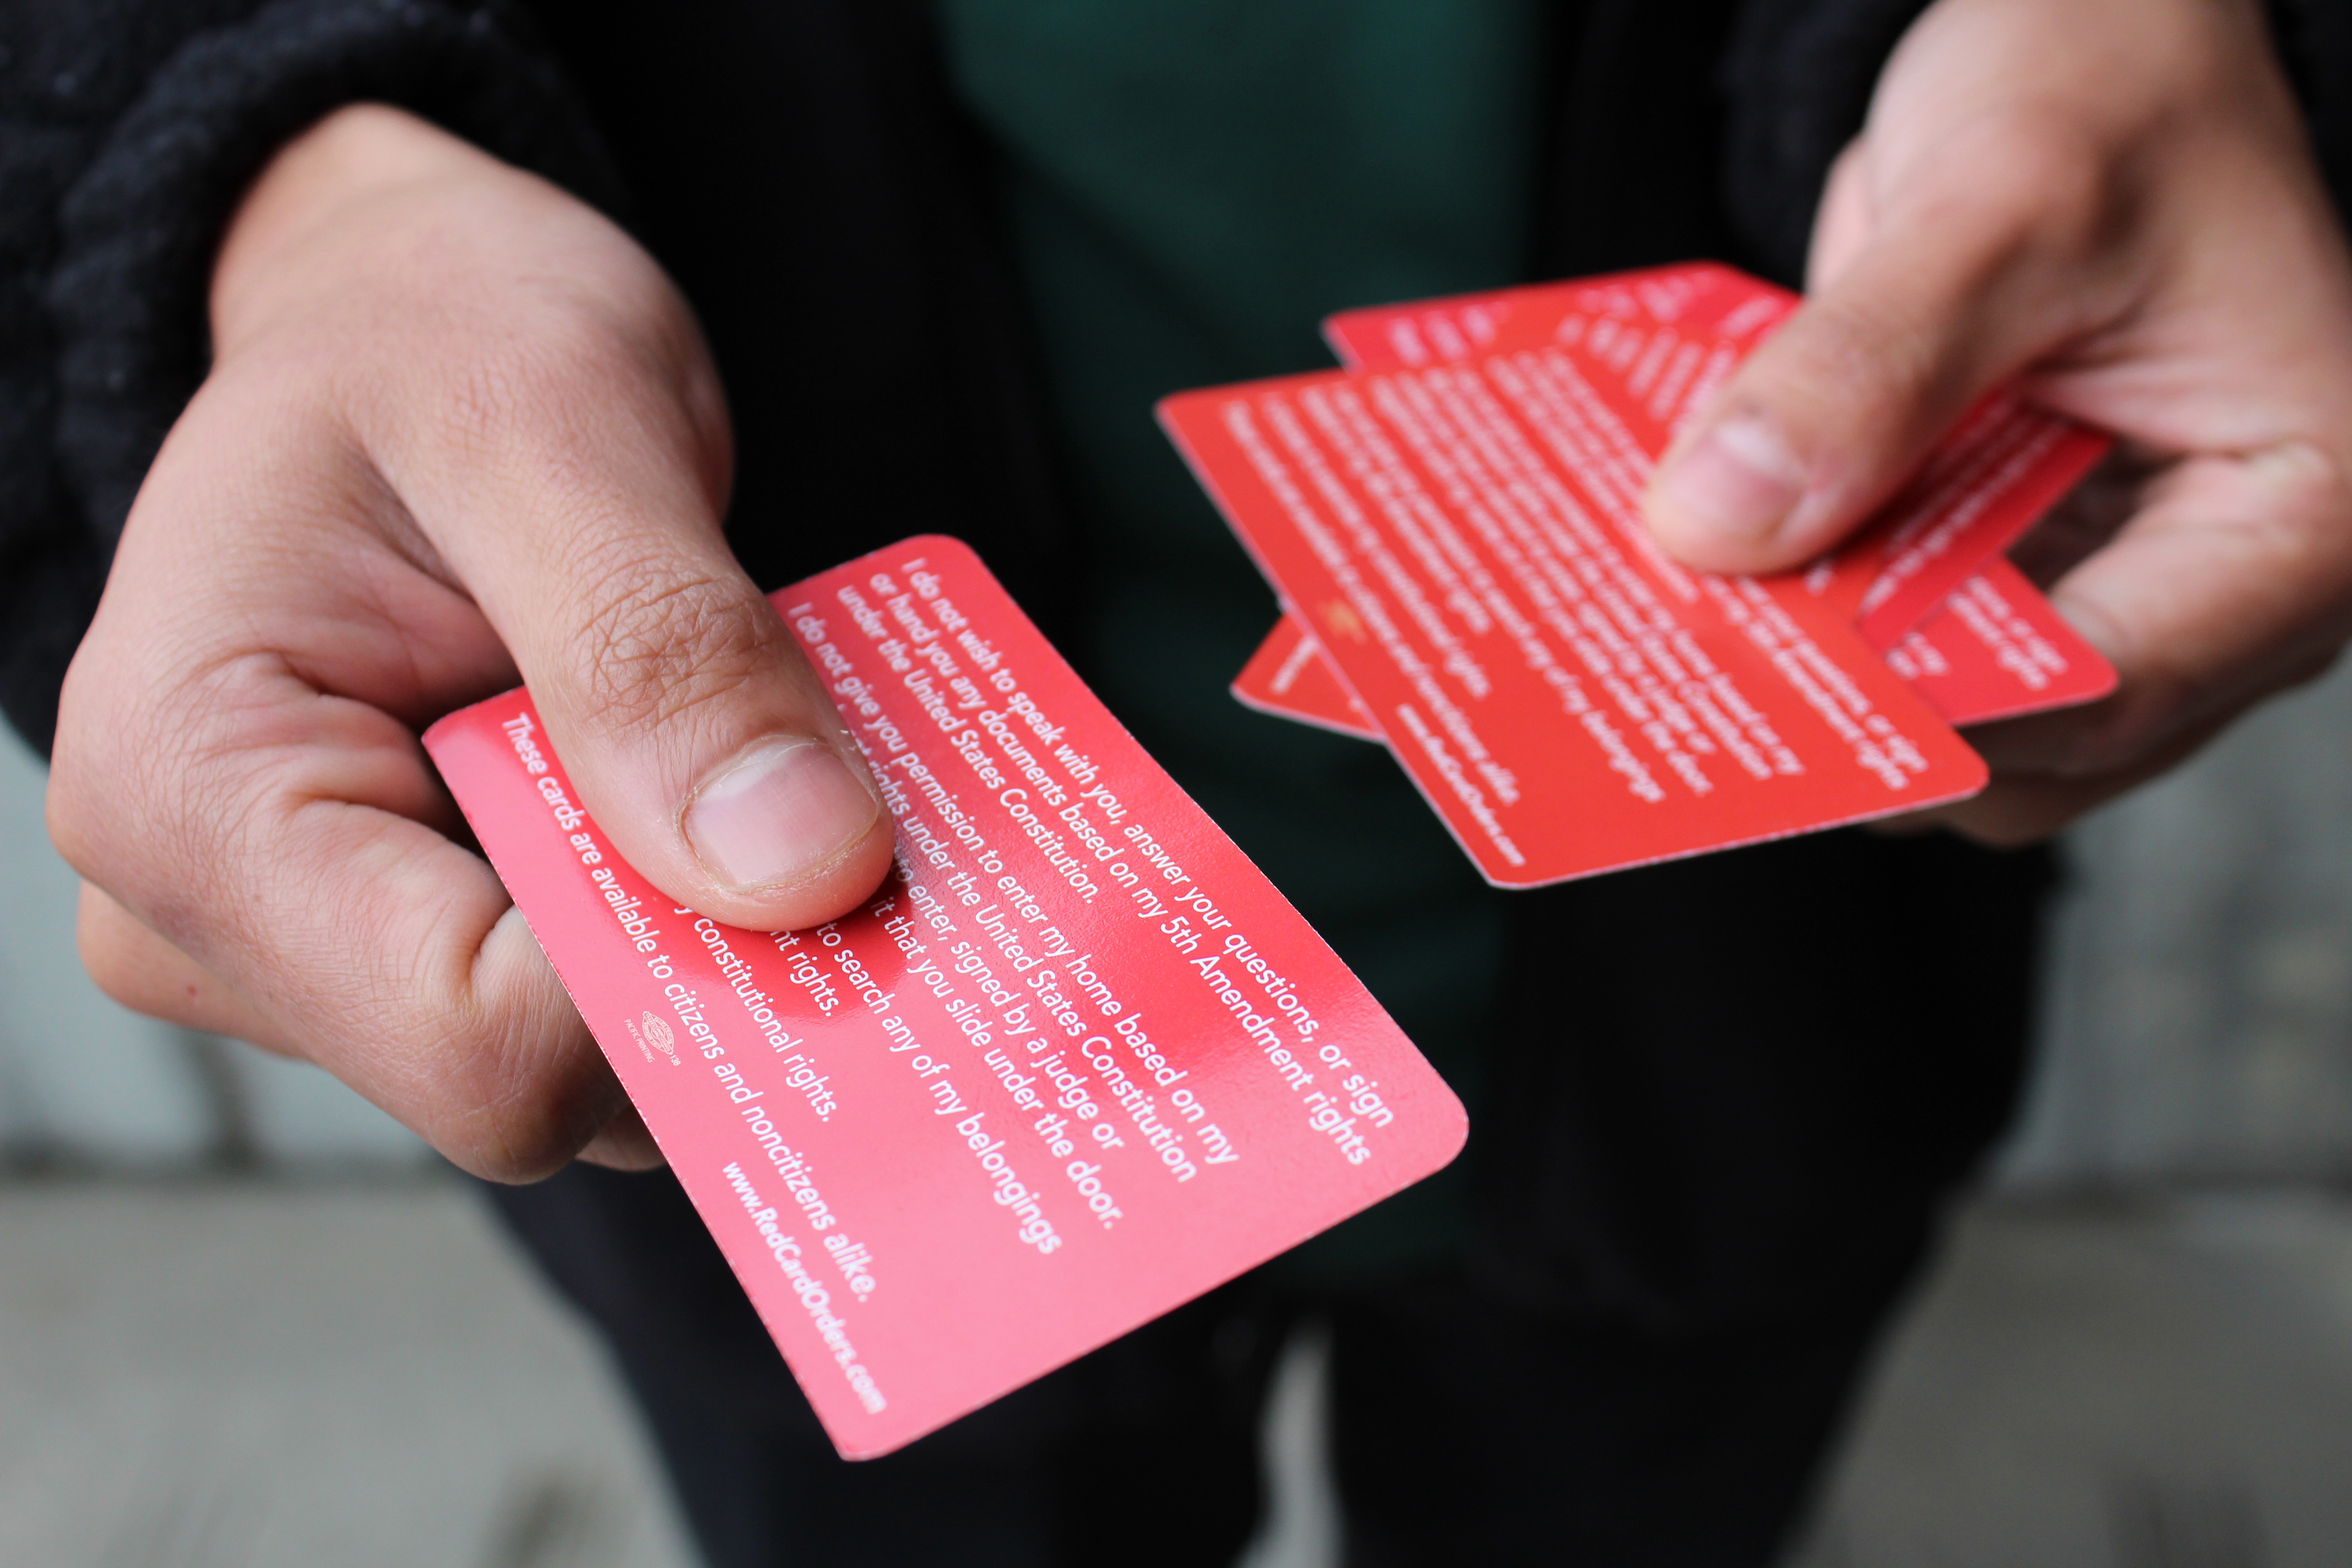 Close up of hands holding multiple red cards